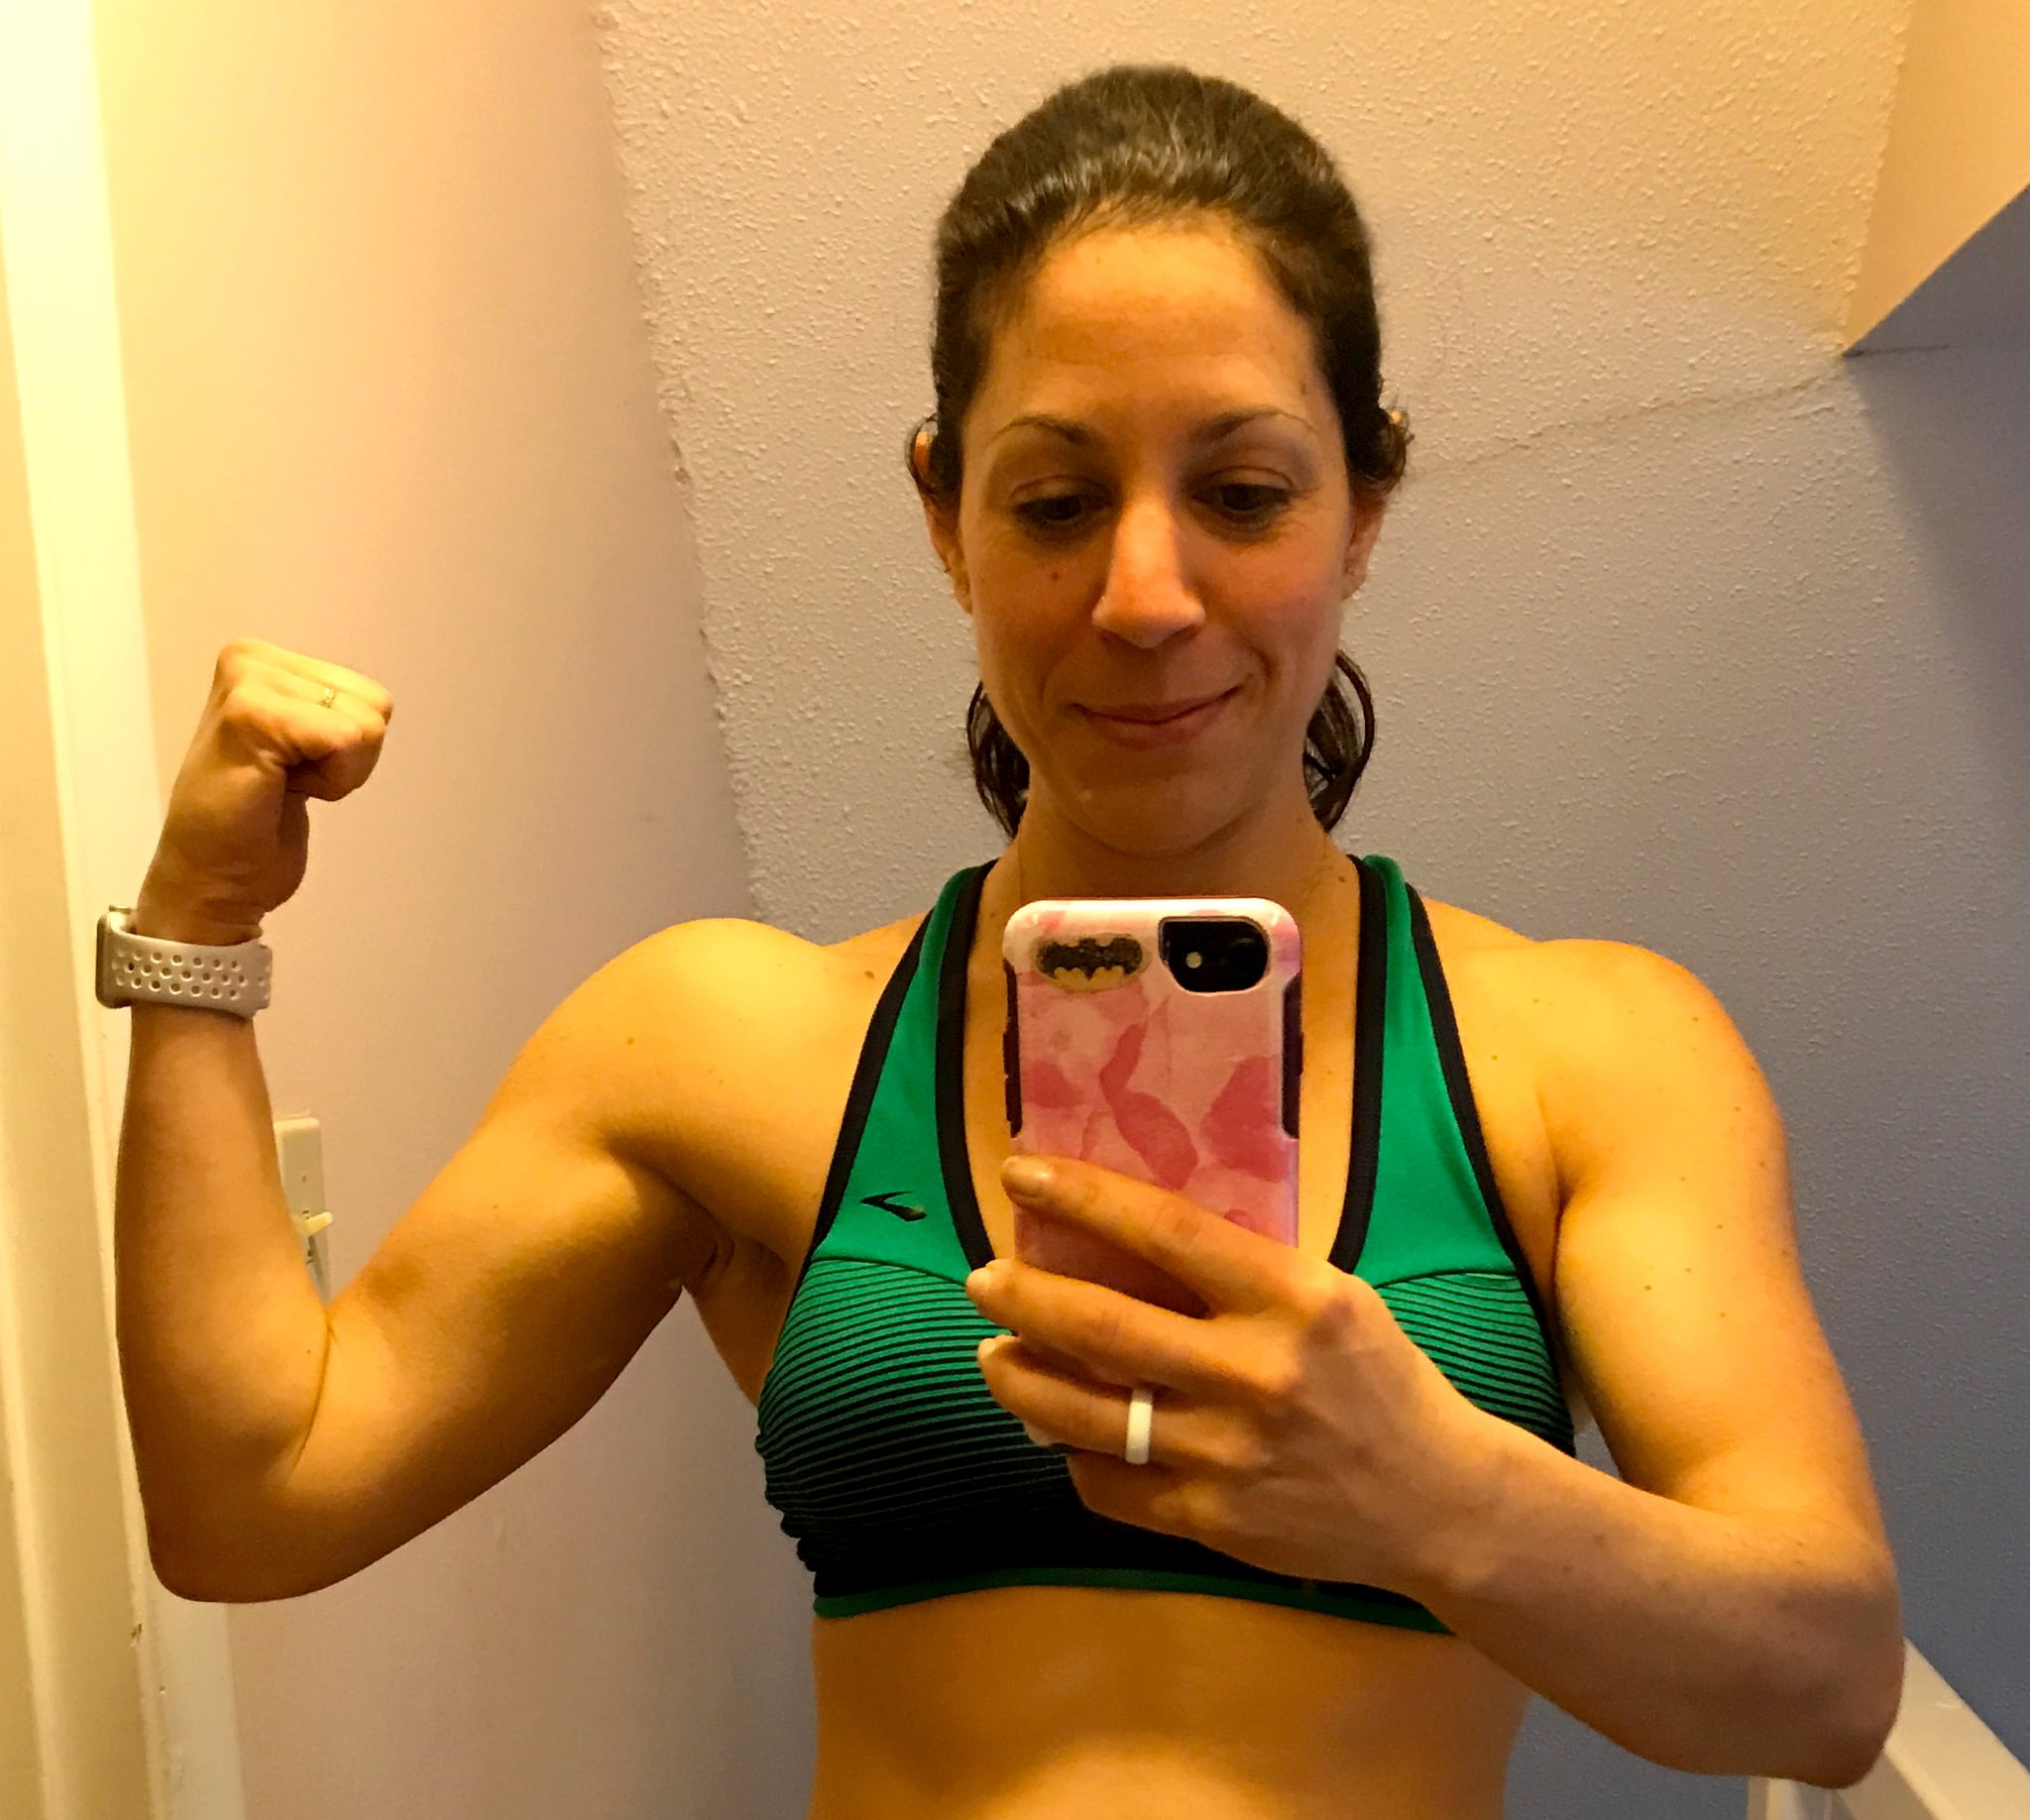 I Did 50 Push-Ups a Day For 2 Weeks, and Here's What My Arms Look Like